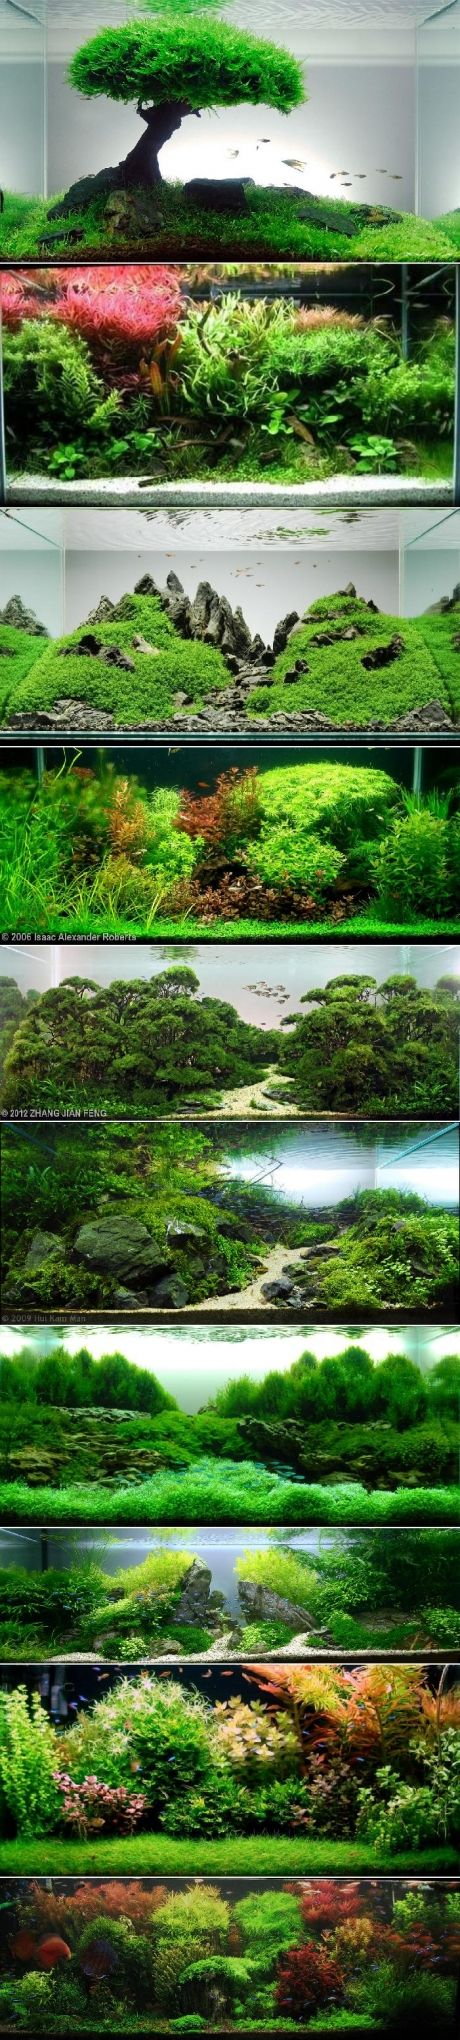 Awesome aquascaping